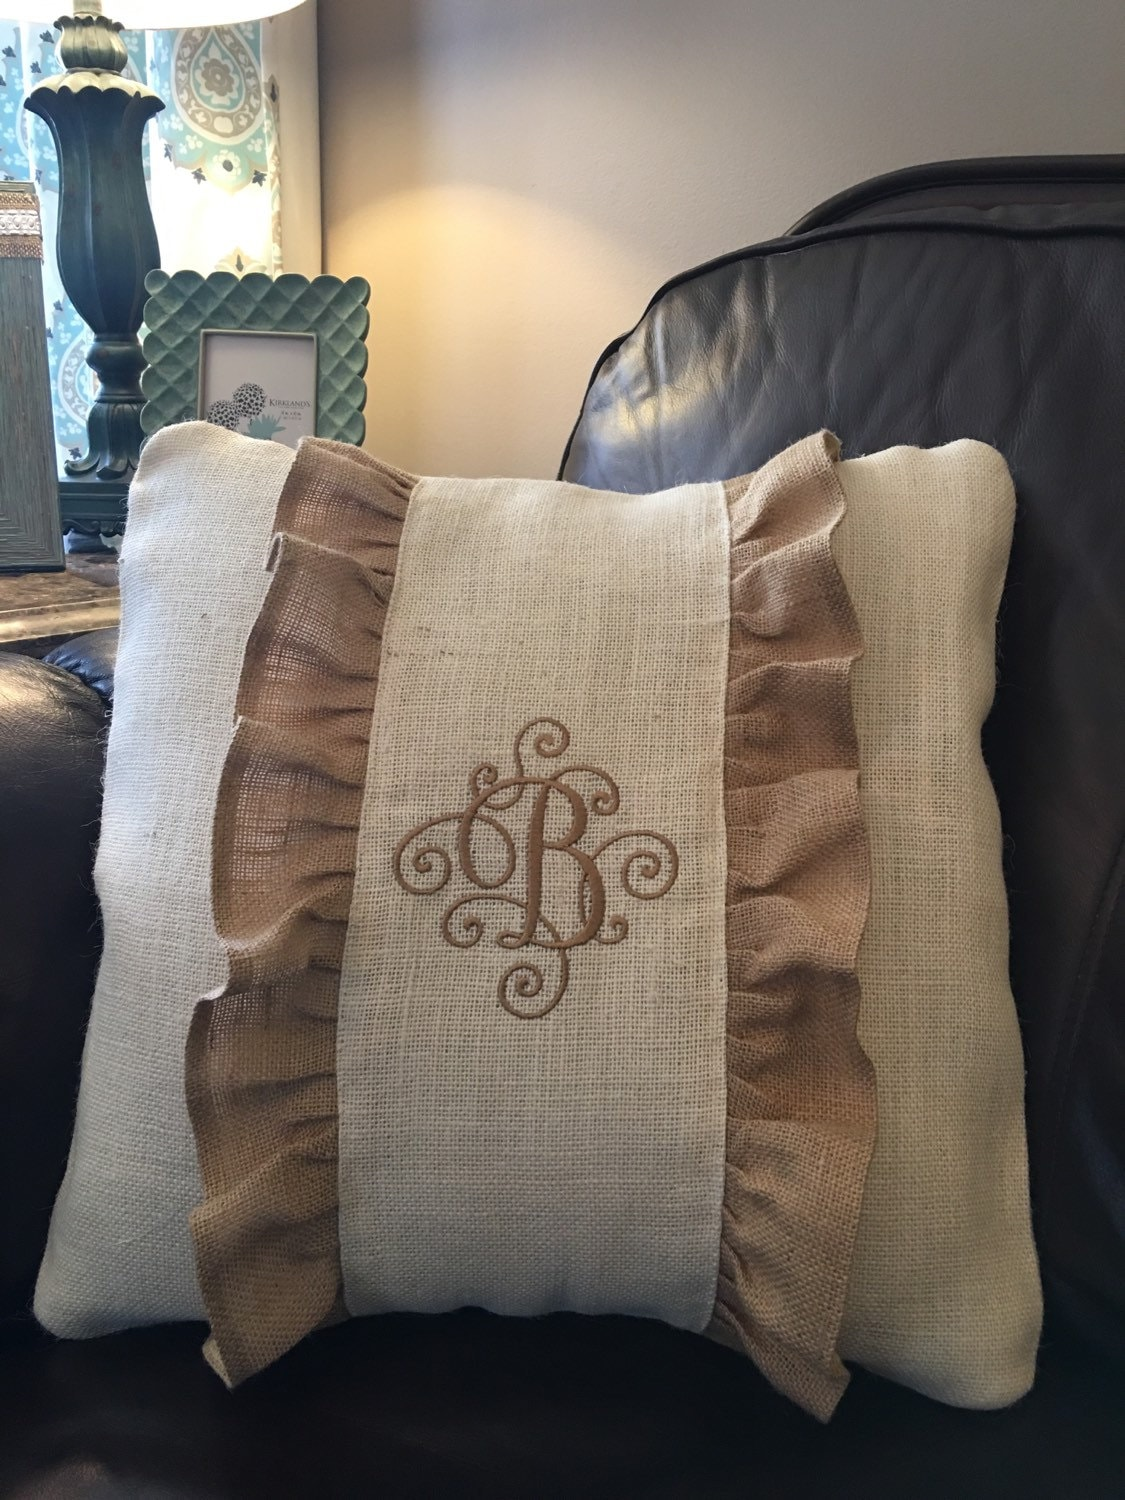 Decorative Burlap Pillow Covers : Burlap pillow cover personalized pillow cover decorative